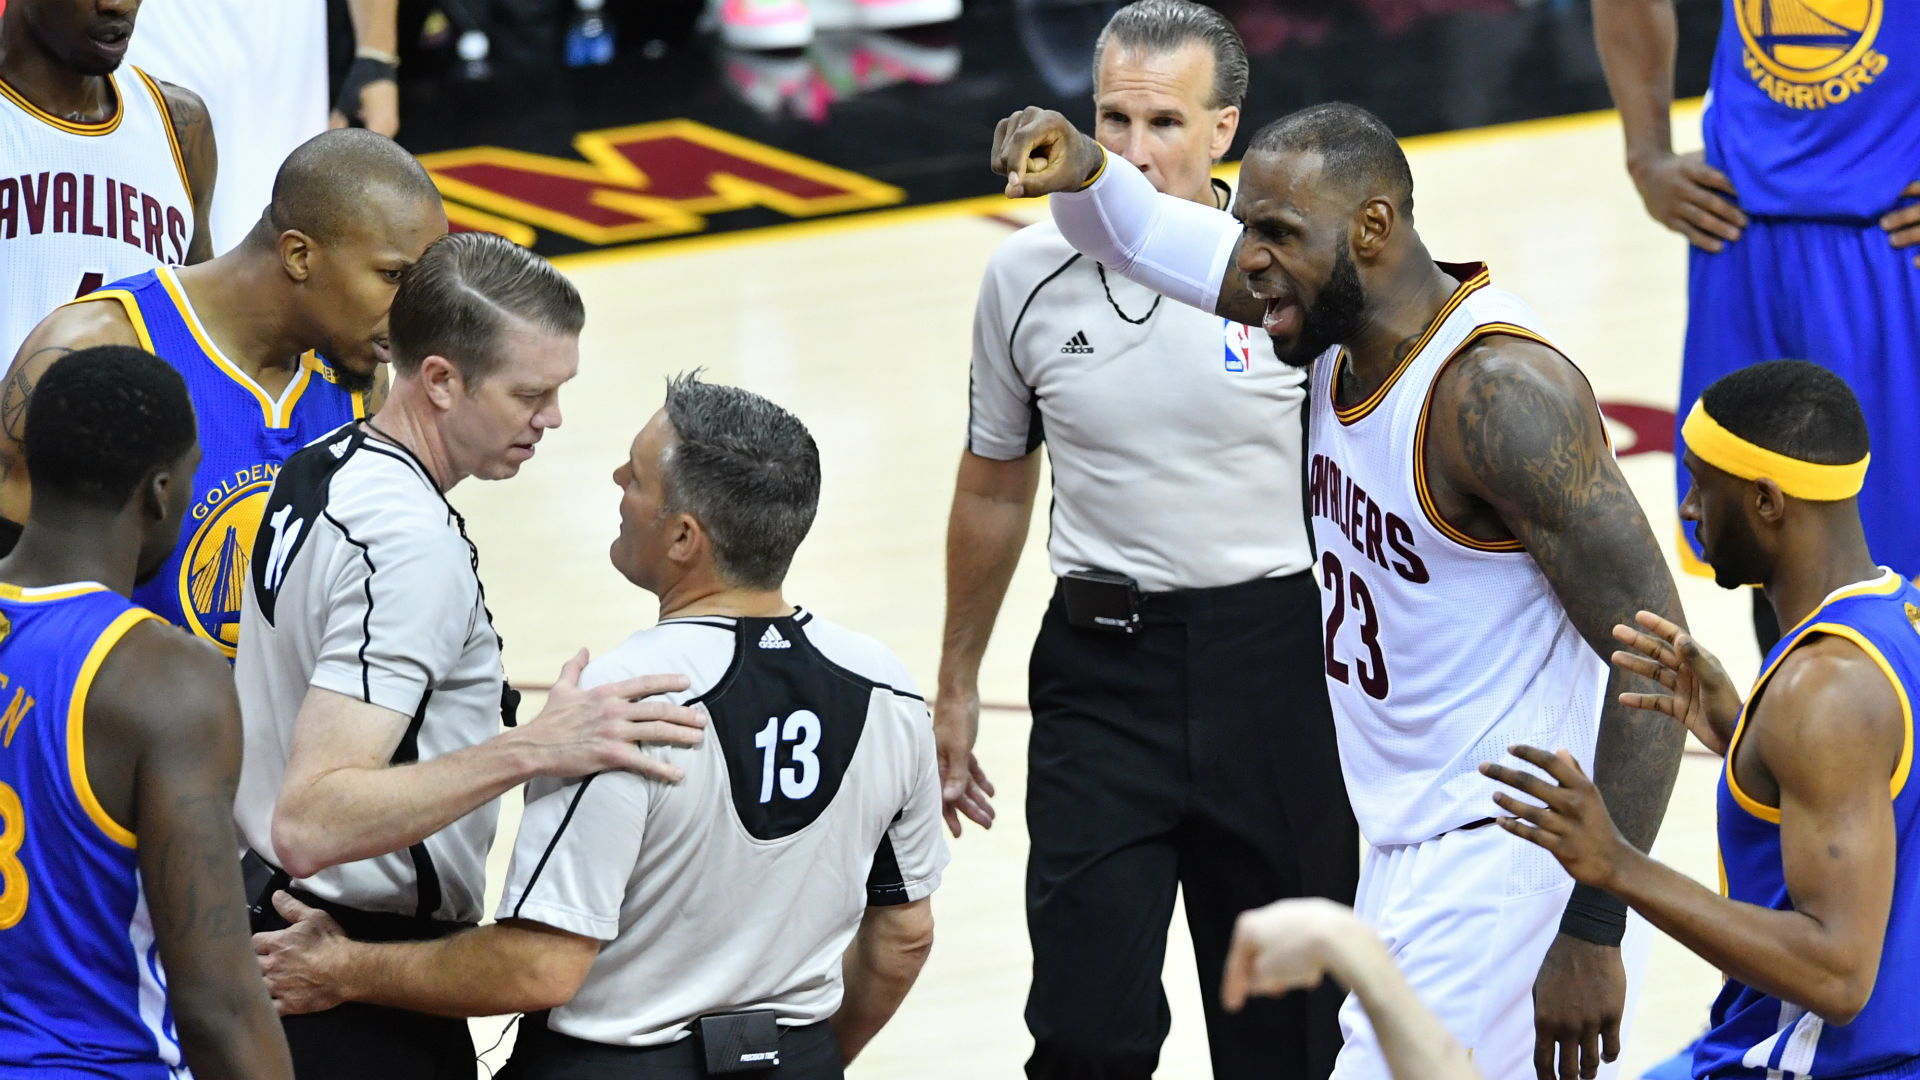 Refs take responsibility for technical foul confusion in Game 4 of Finals